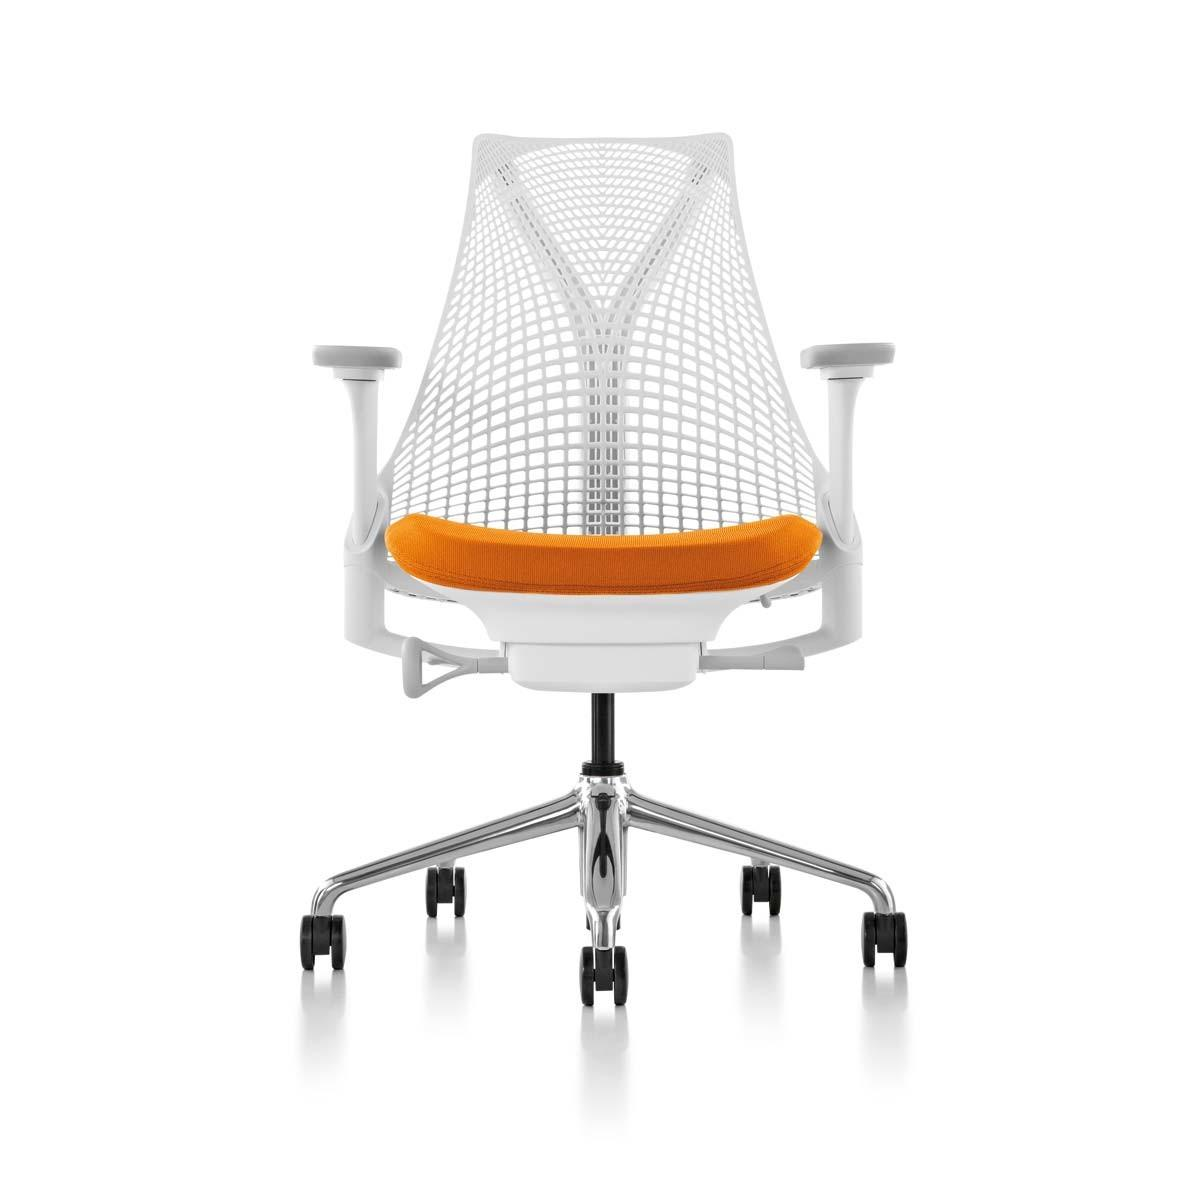 45 Inspiring Spectacular Herman Miller Chairs That Everyone Will